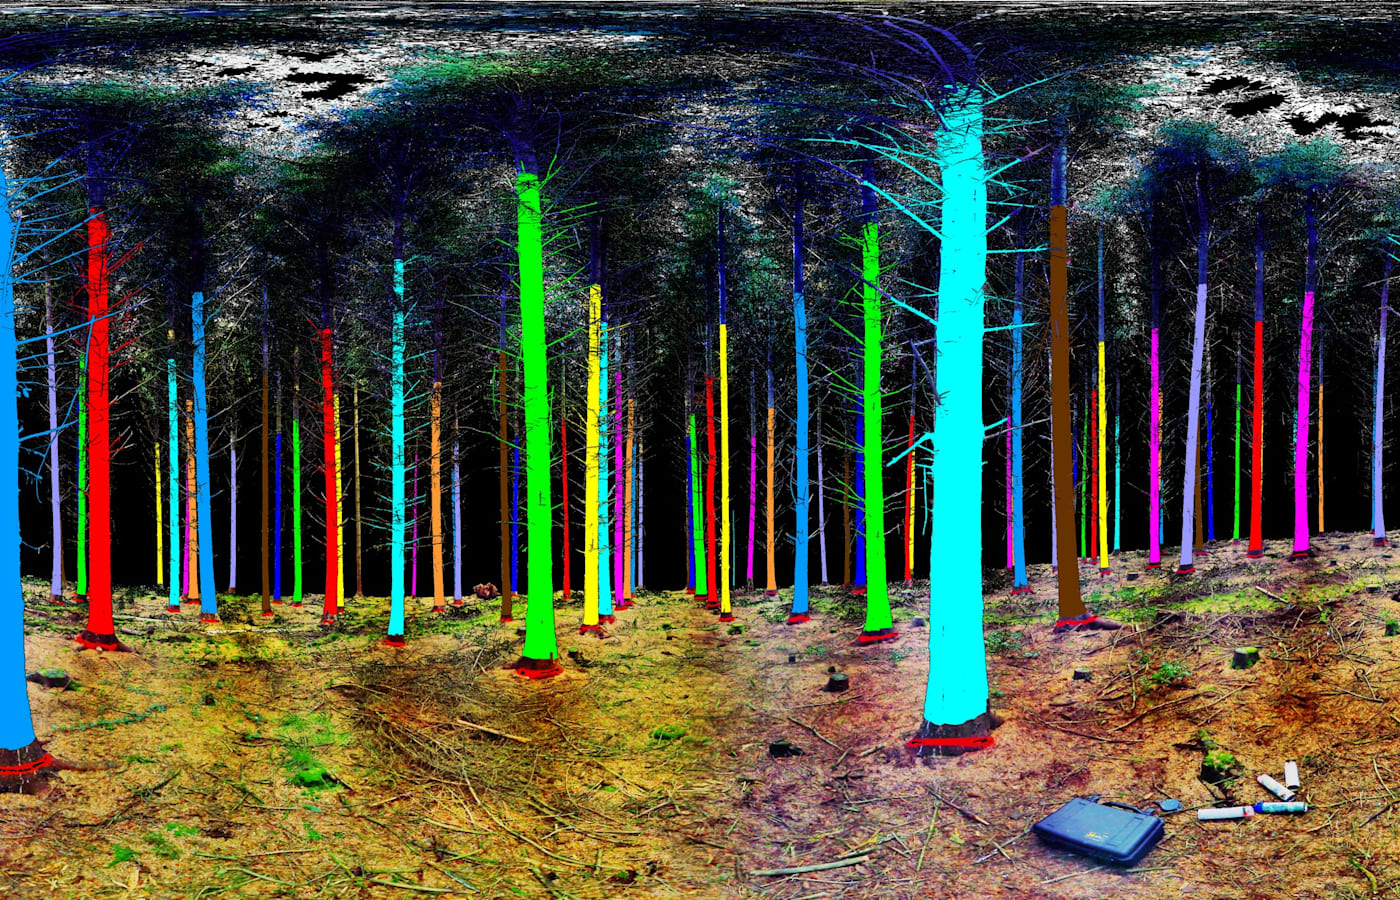 A false-color image of planted trees. State forest agencies and private plantations use lasers to measure tree health and prevent logging waste.